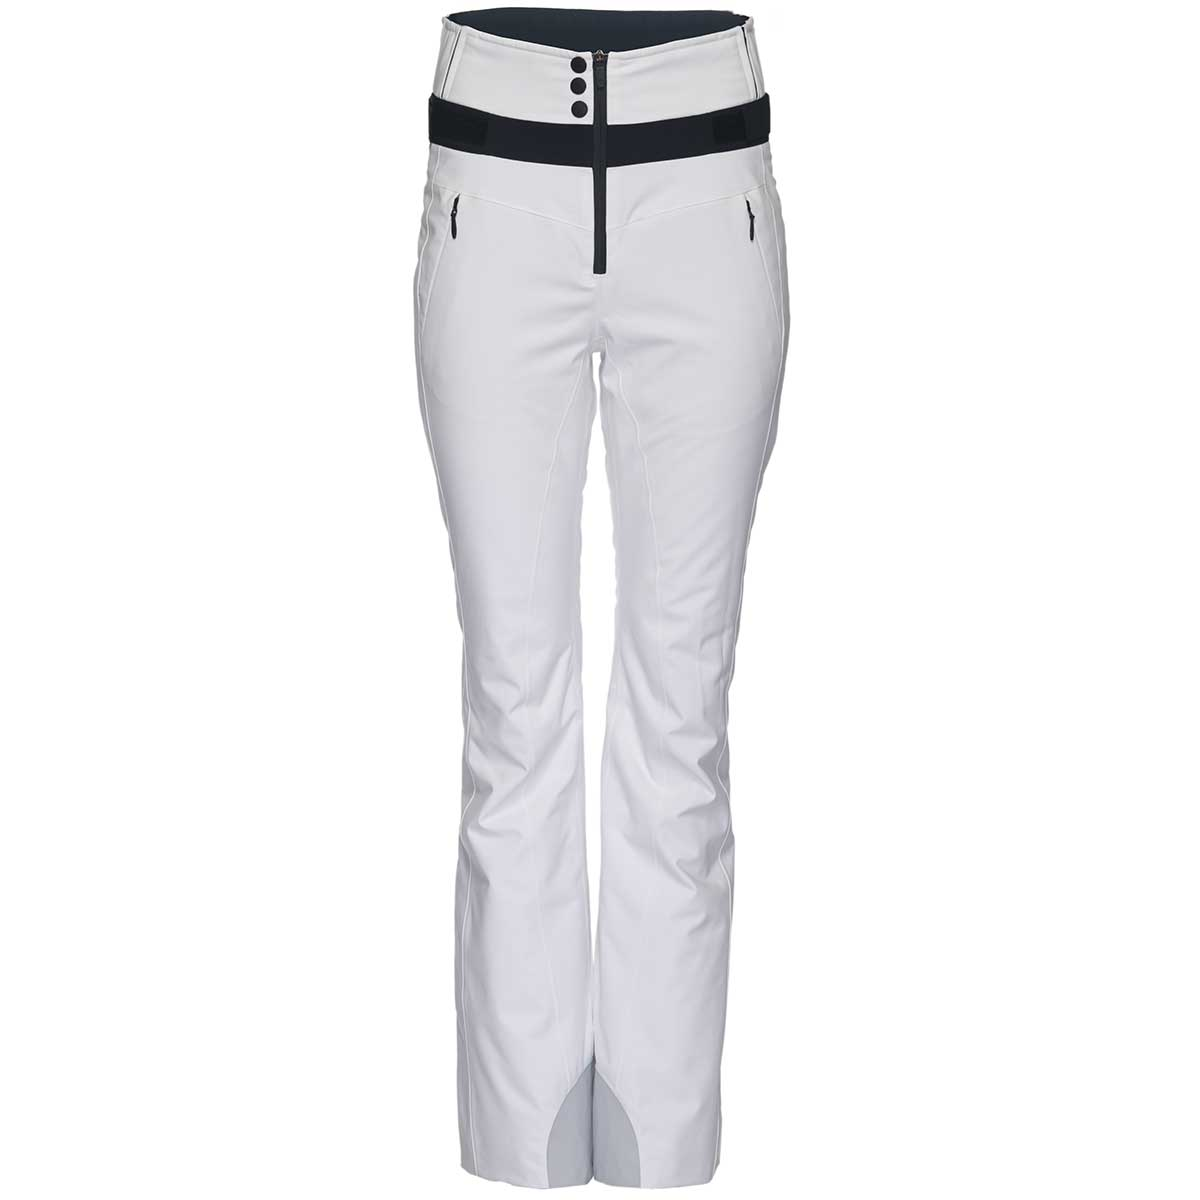 Bogner Fire+Ice Borja women's ski pant in off white